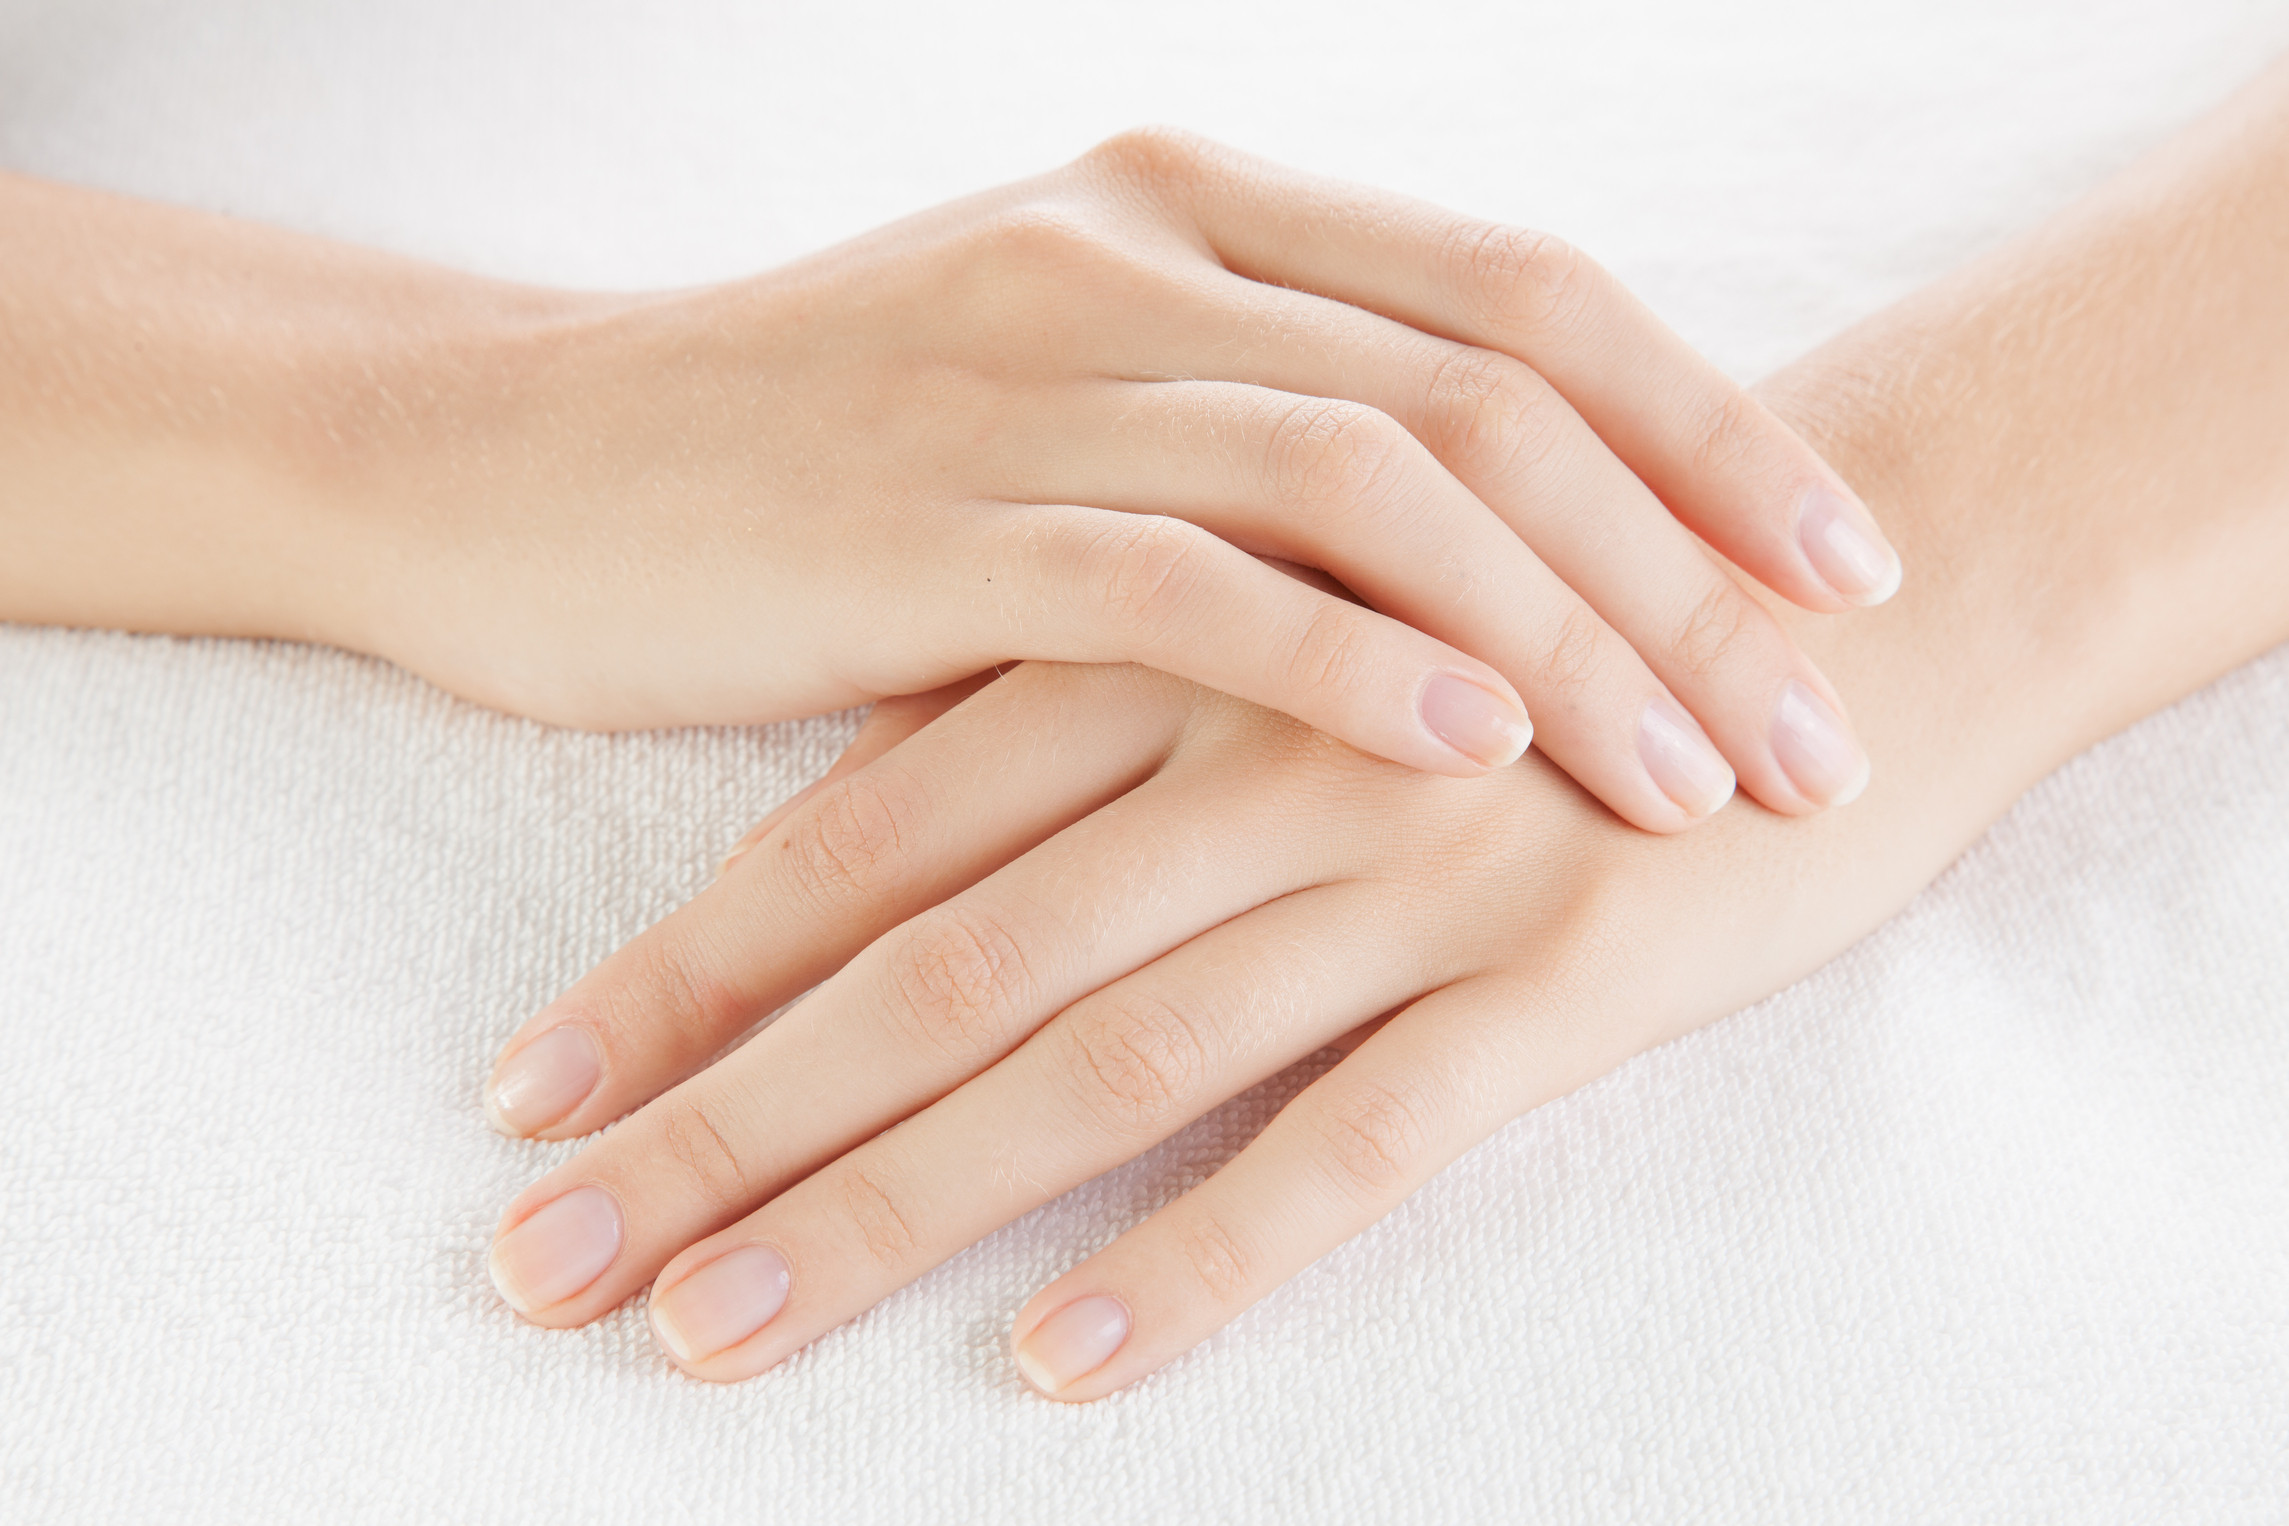 Olive-oil-for-skin-to-soften-the-hands